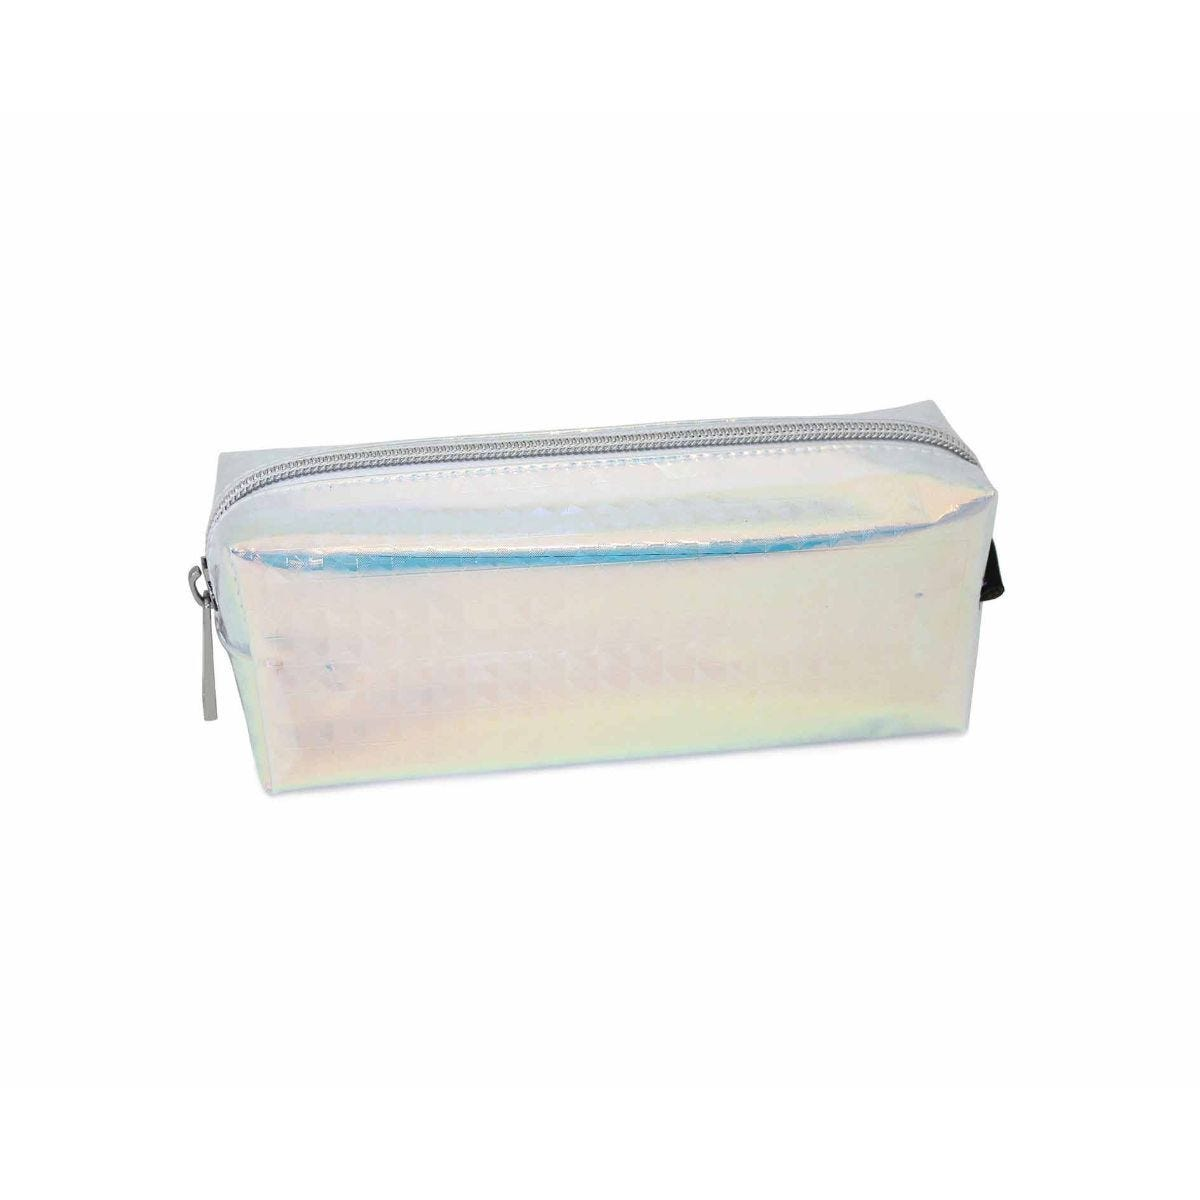 Iridescent Clear Wedge Pencil Case